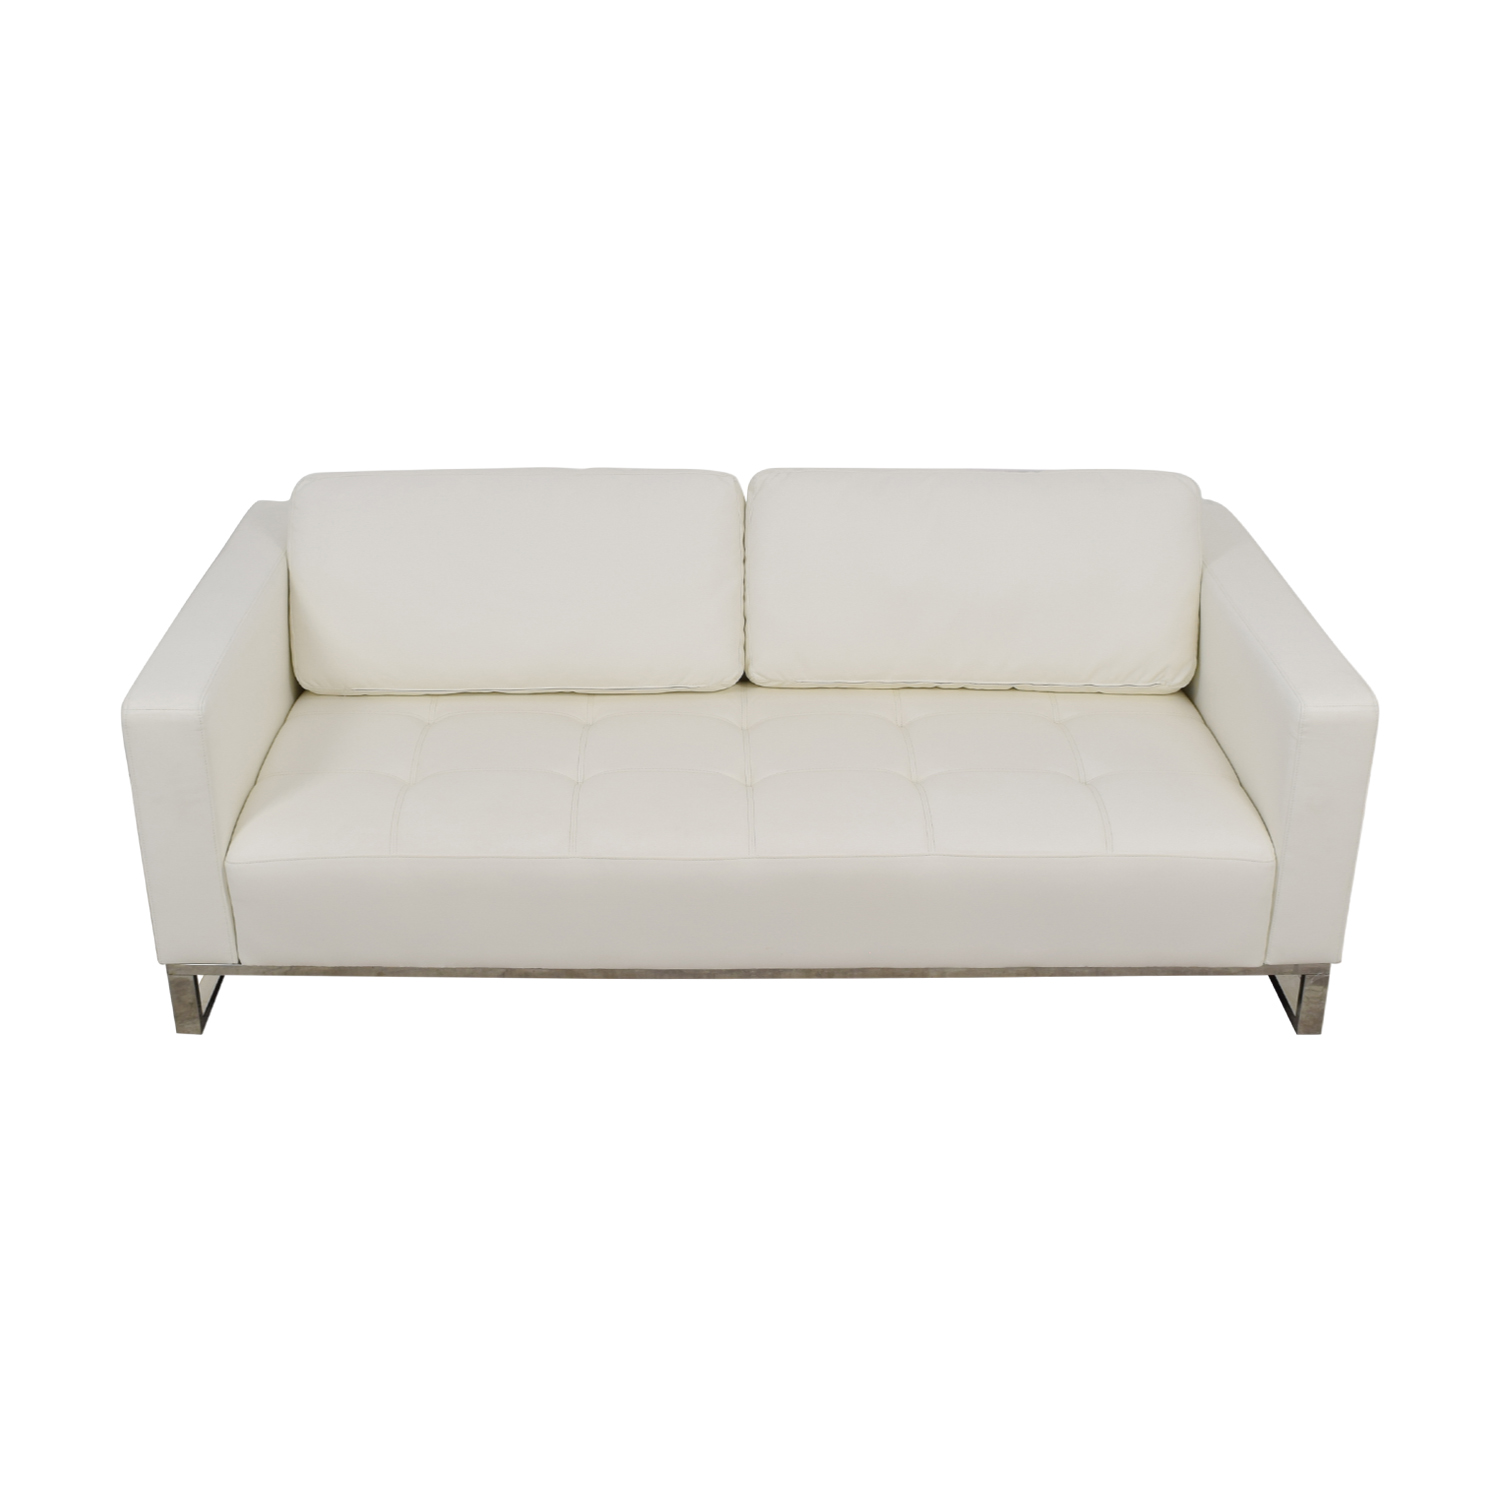 Modani Modani Convertible Eco Leather White Nelson Sofa nj